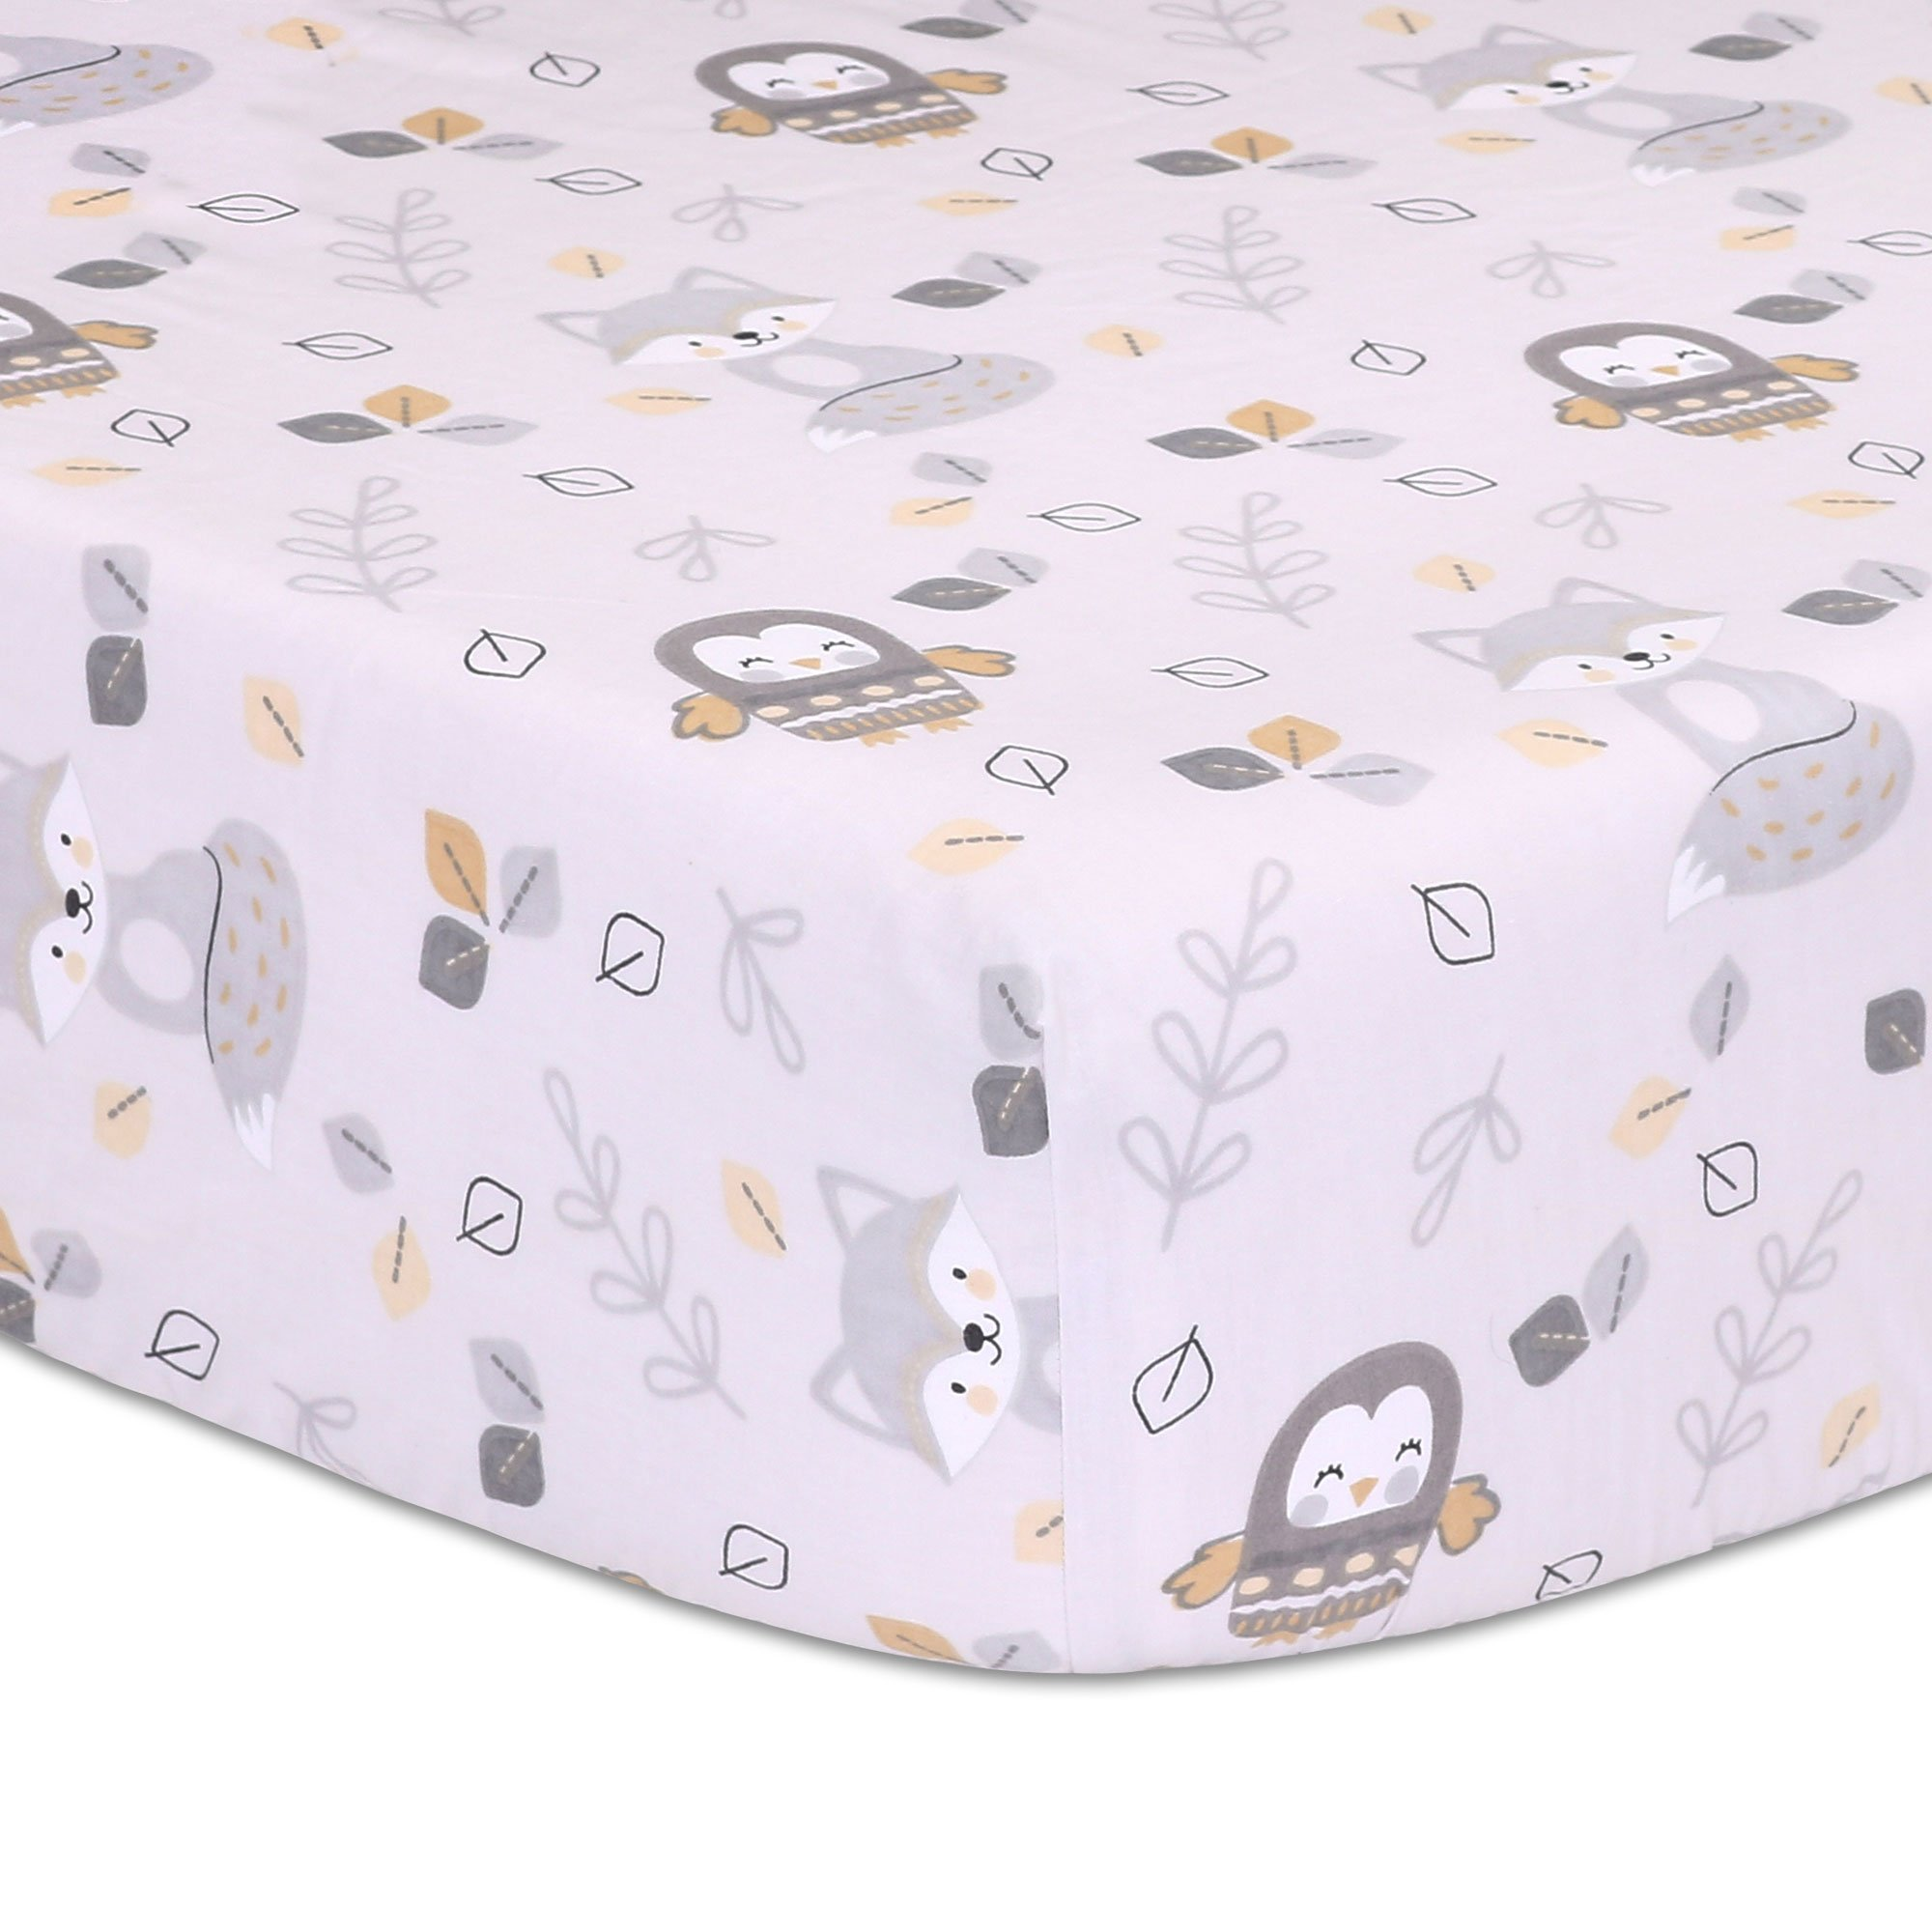 Woodland Friends Owls and Foxes Baby Fitted Crib Sheet - Grey and Tan Cotton